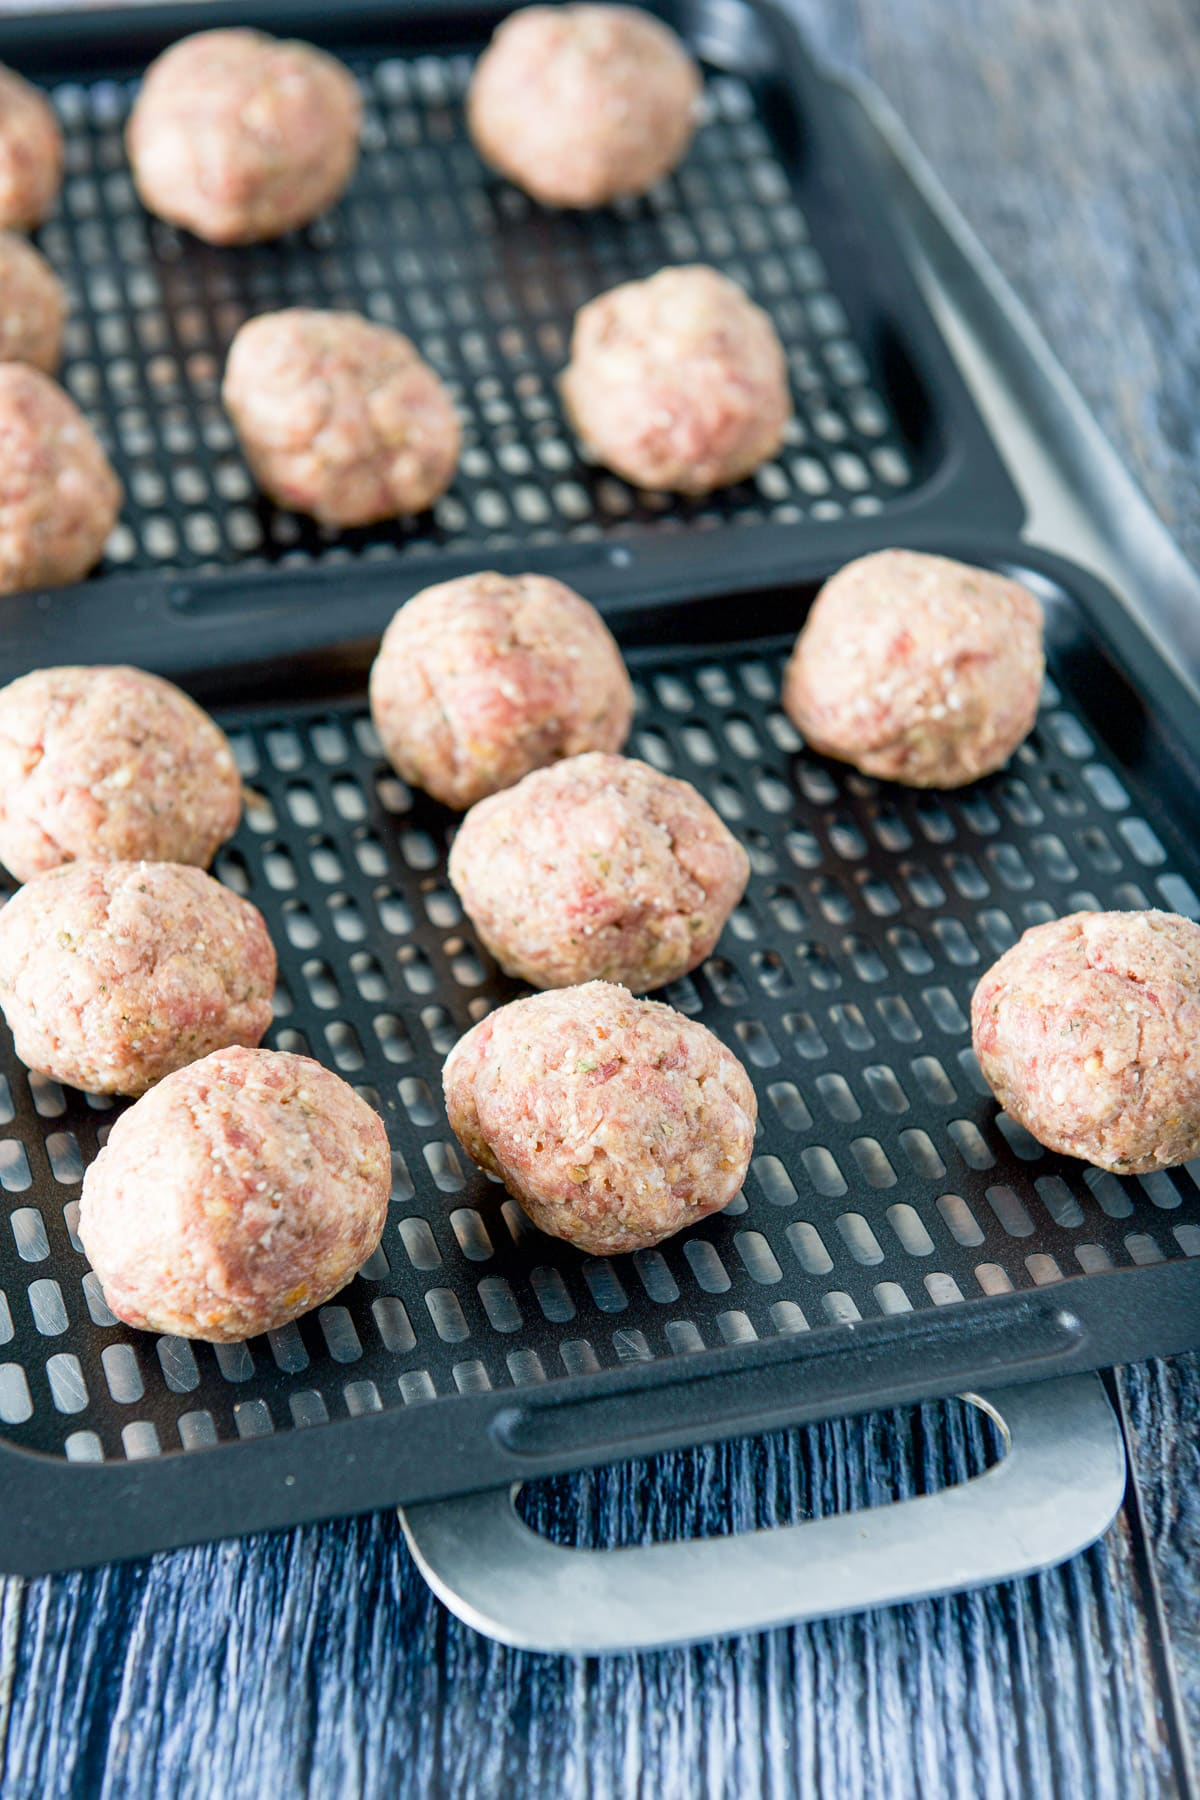 Raw meat rolled into balls on two grill trays